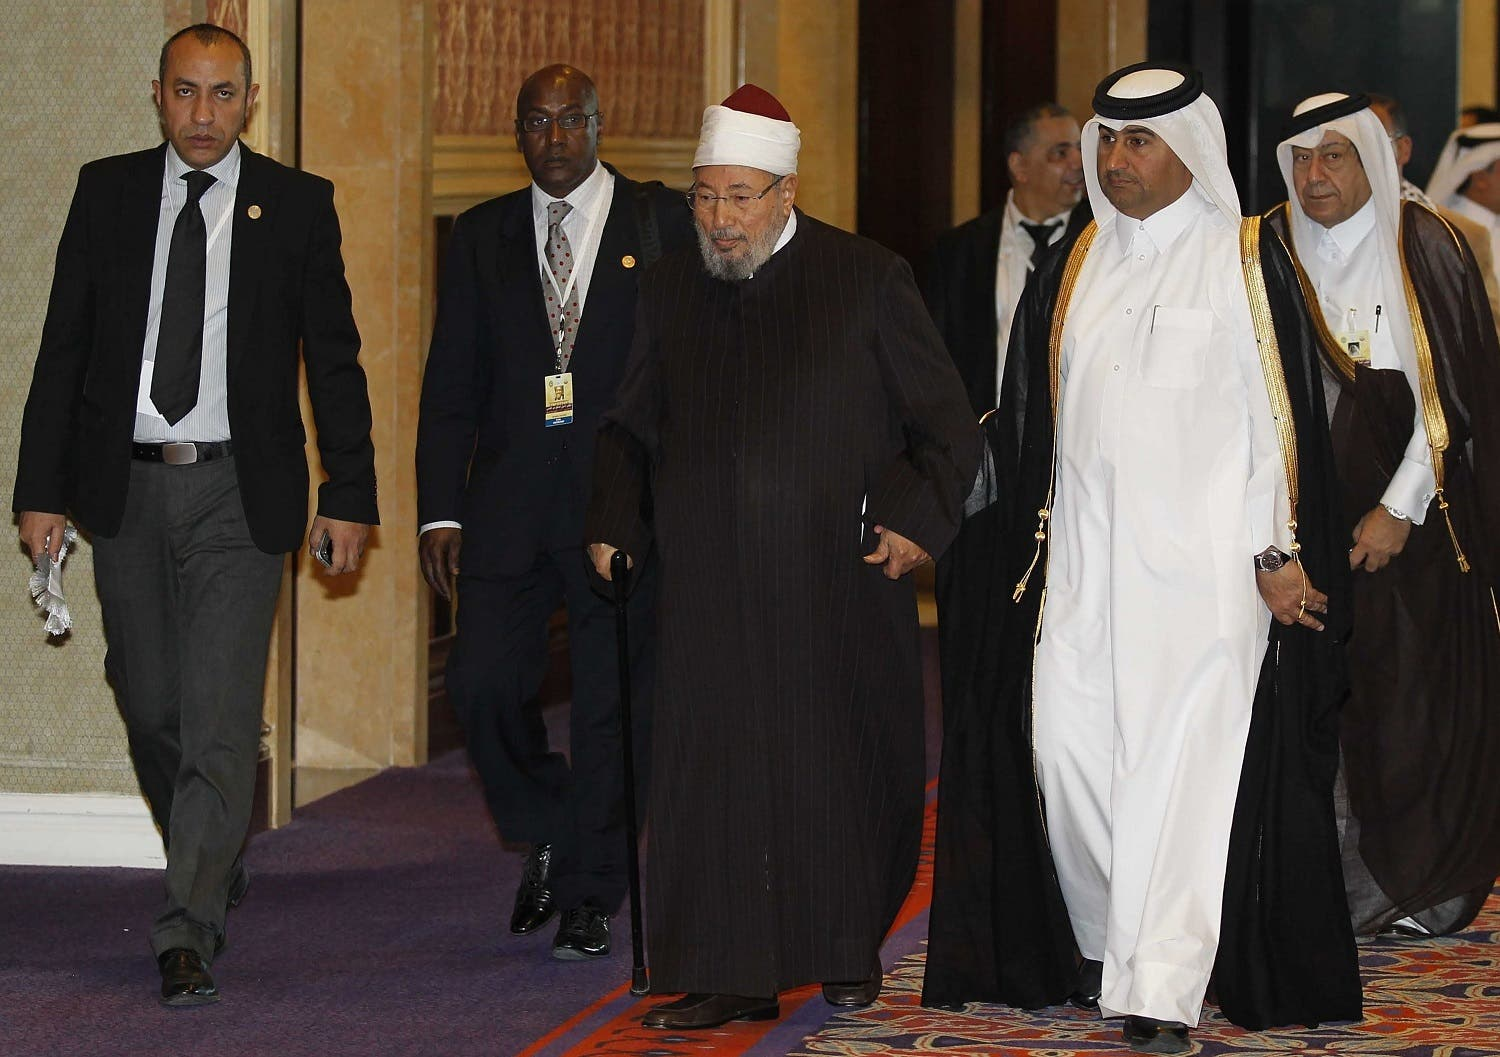 Yusuf al-Qaradawi arrives at the opening of the International Conference on Jerusalem in Doha on February 26, 2012. (AFP)